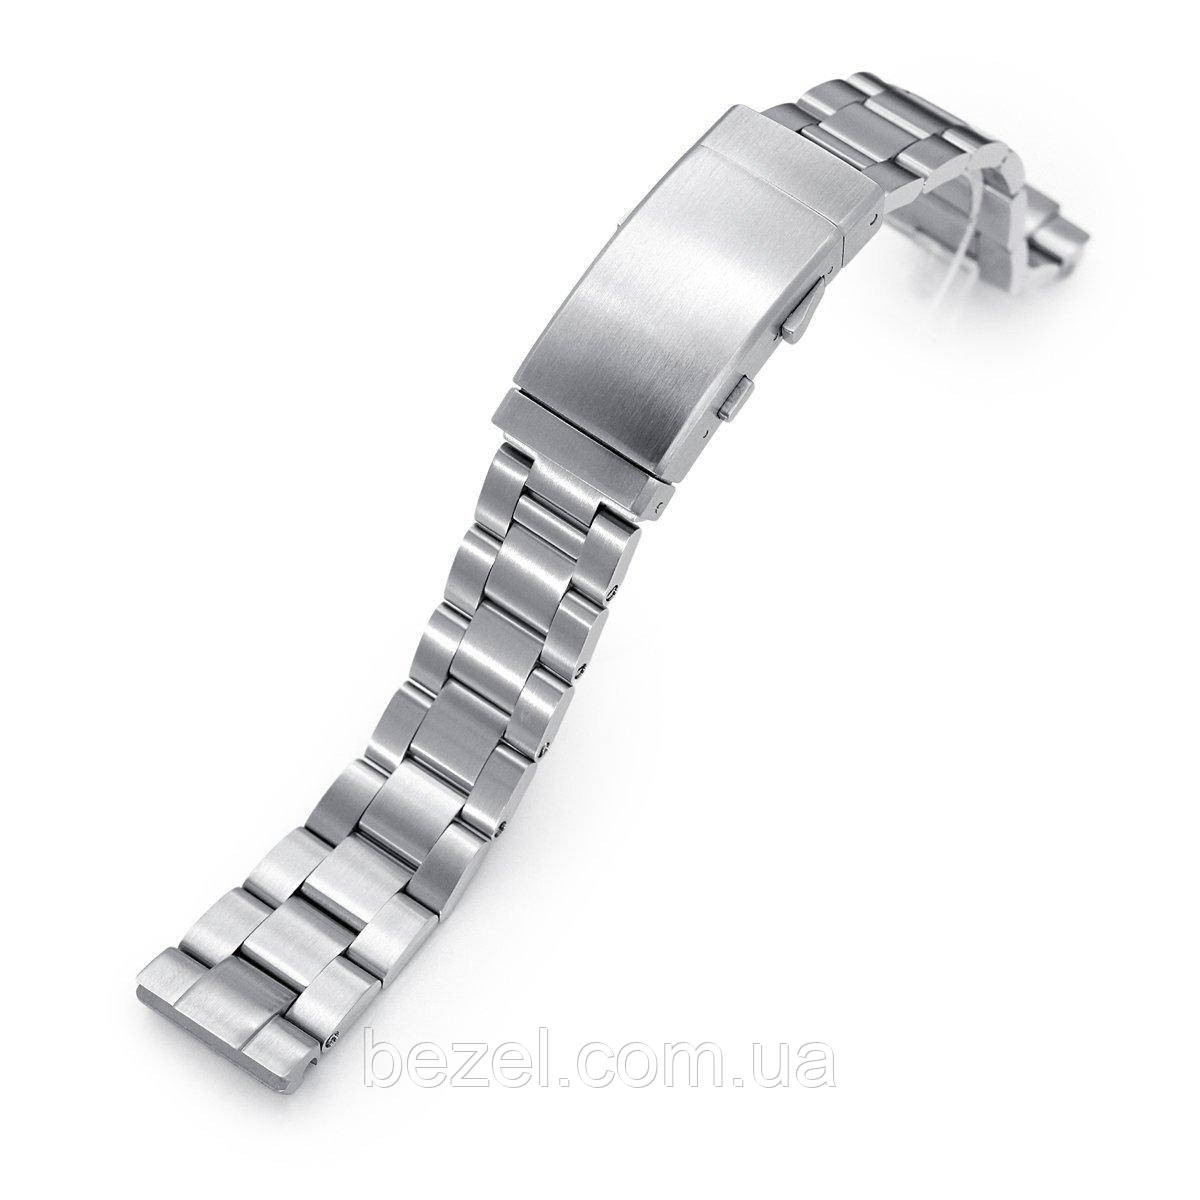 20mm Super 3D Oyster 316L Stainless Steel Watch Bracelet for Seiko SBDC053 aka modern 62MAS, Wetsuit Ratchet Buckle, Brushed